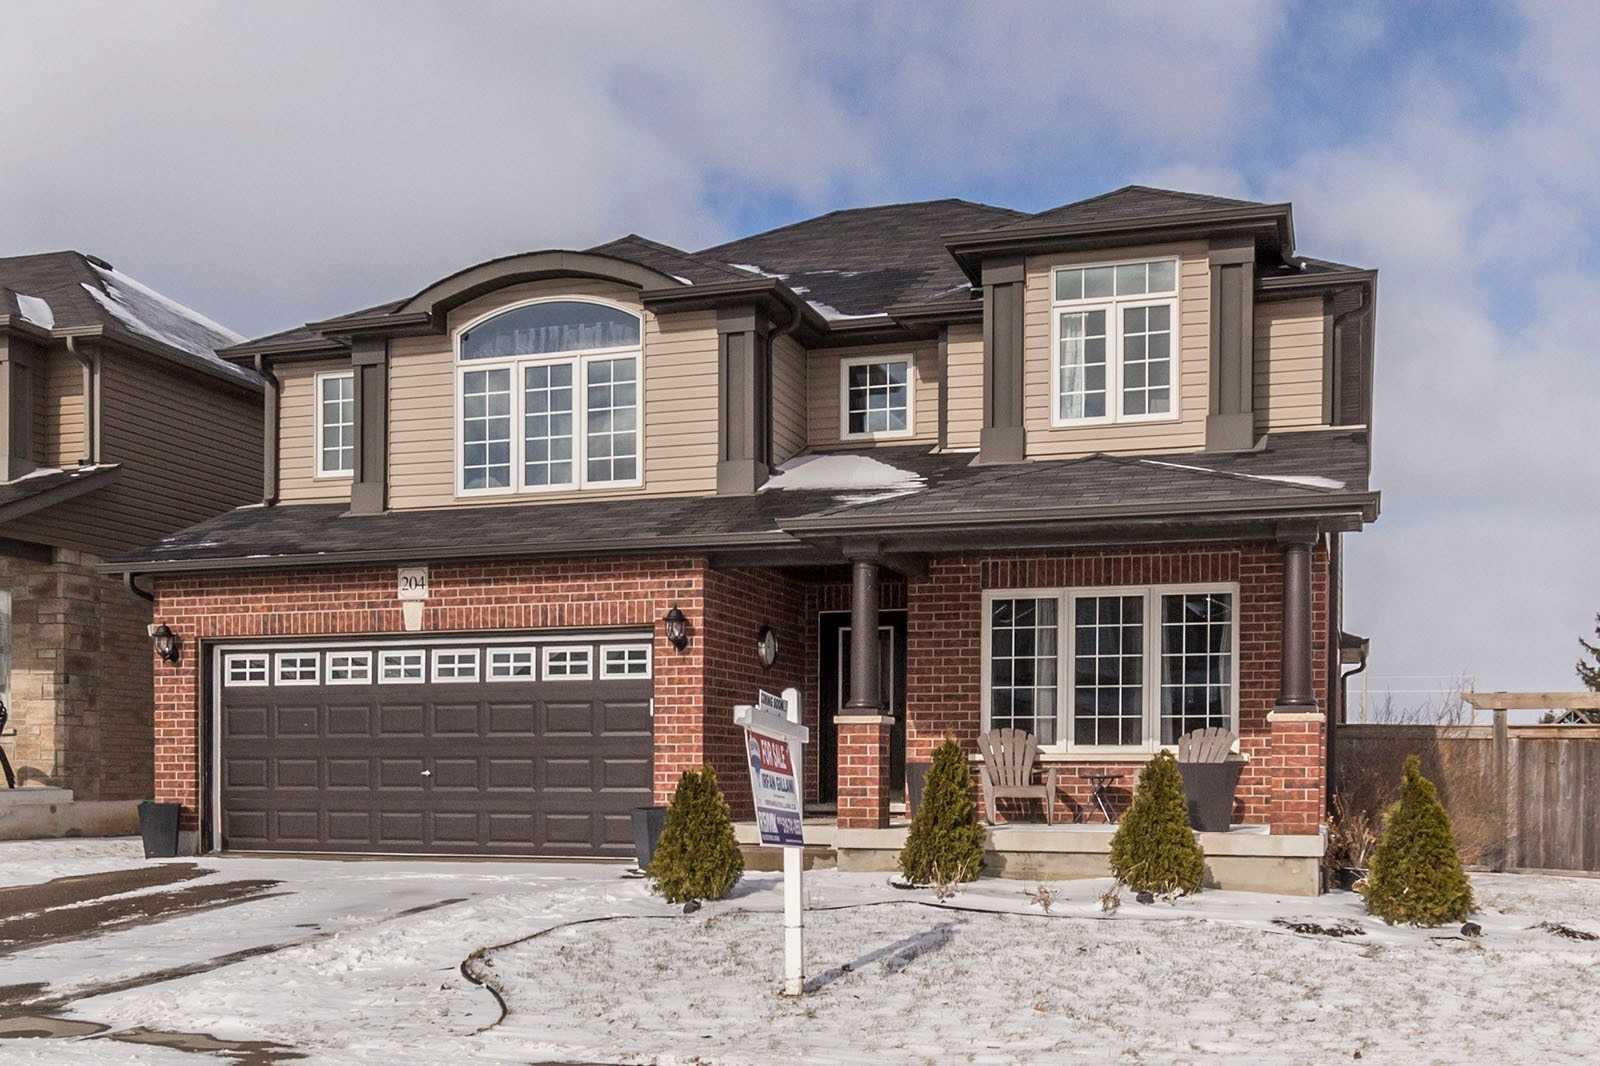 pictures of 204 Townsend Dr, Woolwich N0B 1M0